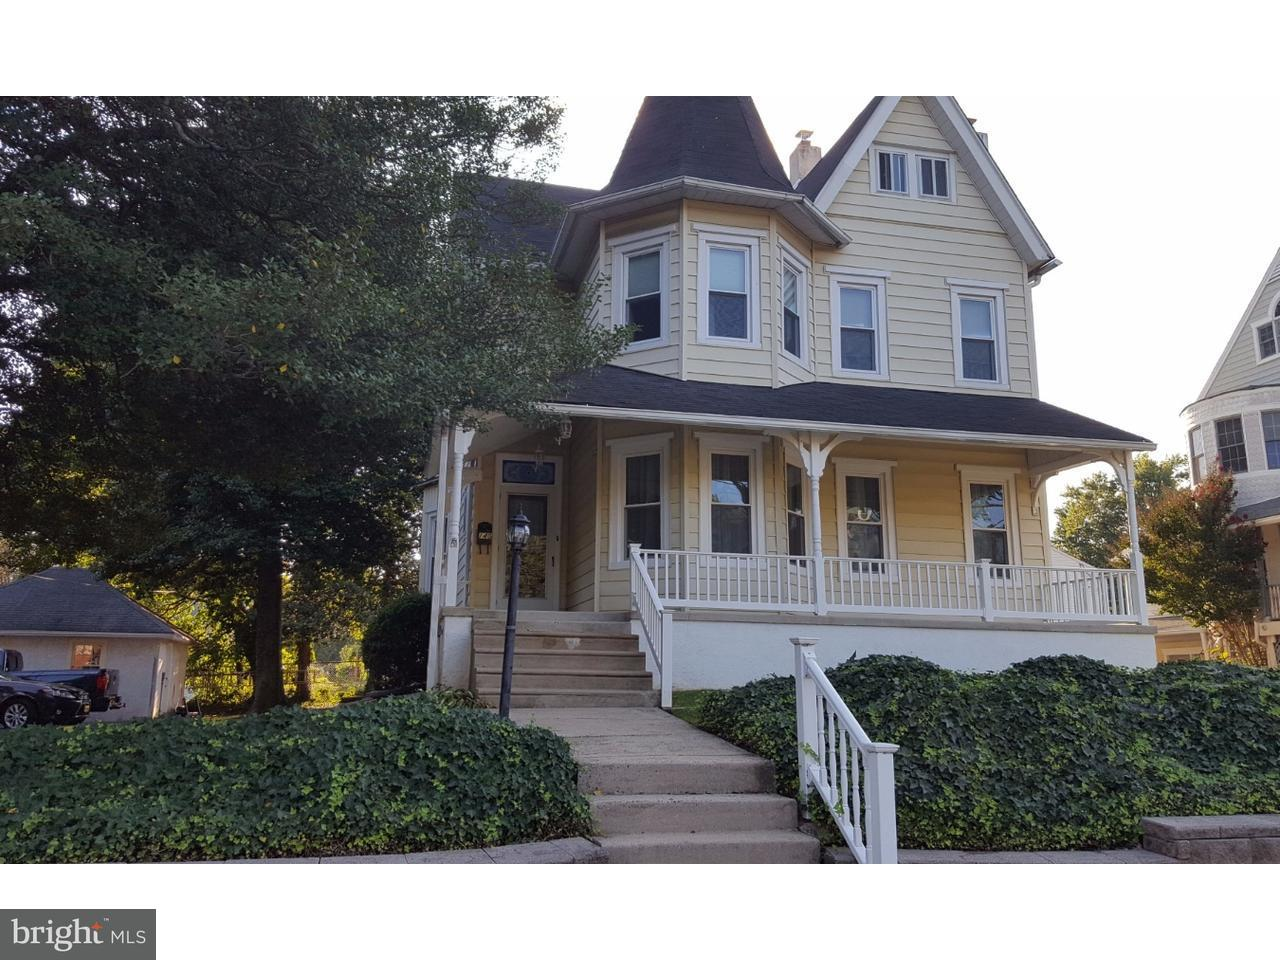 Single Family Home for Sale at 140 W RIDLEY Avenue Norwood, Pennsylvania 19074 United States